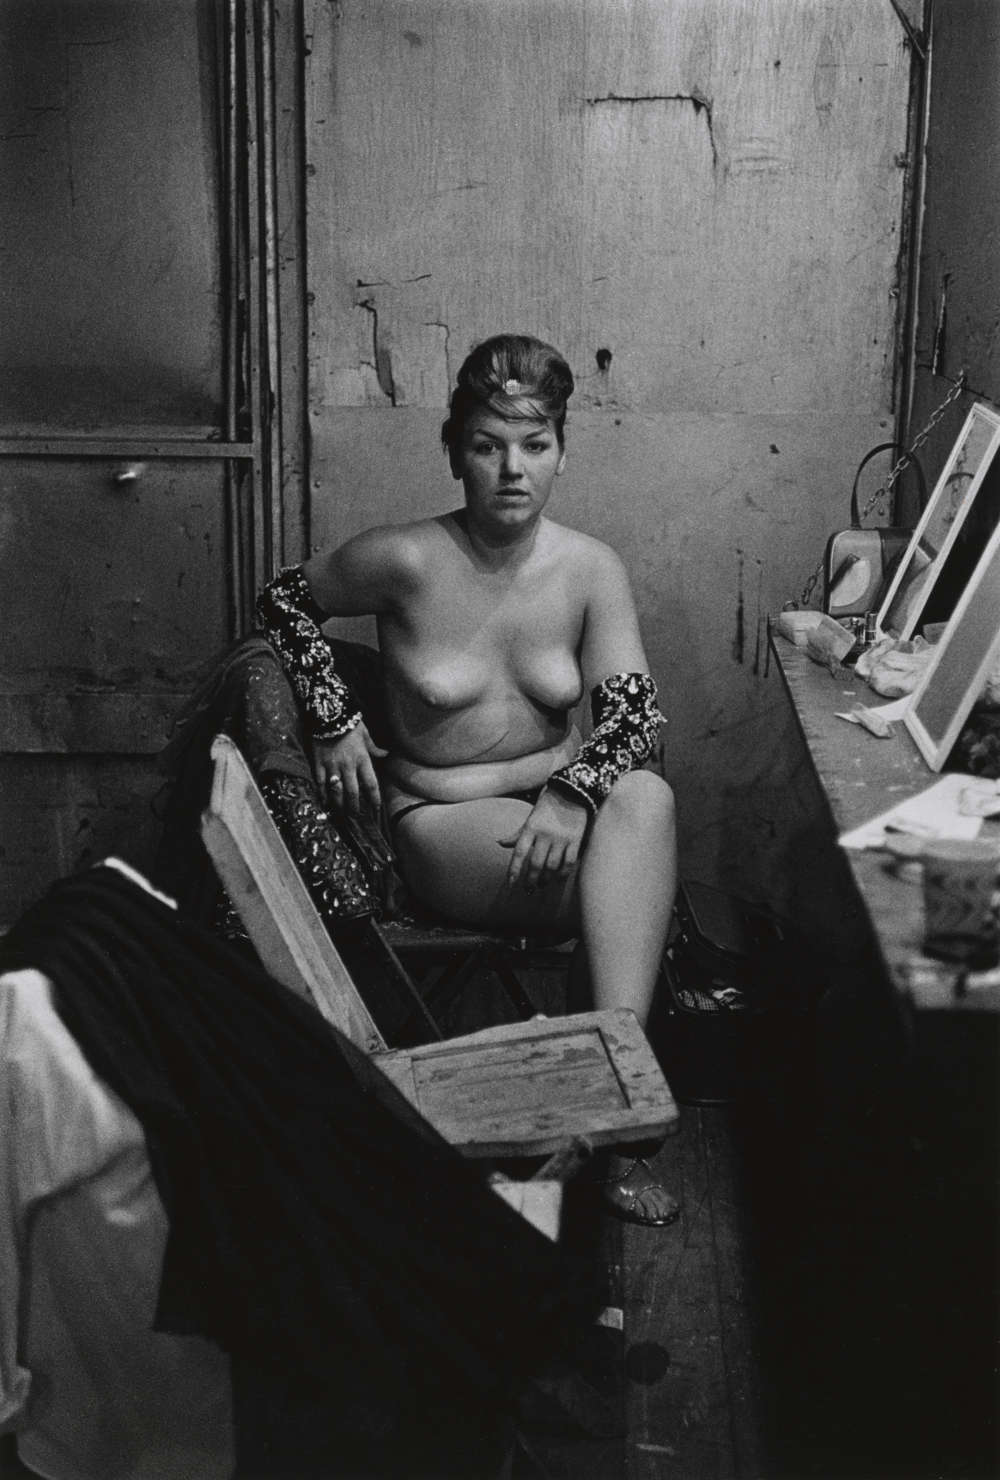 Stripper with bare breasts sitting in her dressing room, Atlantic City, N.J. 1961. 9 1/2 × 6 1/2 in. (24.1 × 16.5 cm) Purchase, Jade Lau Gift, 2015. Courtesy The Metropolitan Museum of Art, New York. Copyright © The Estate of Diane Arbus, LLC. All Rights Reserved